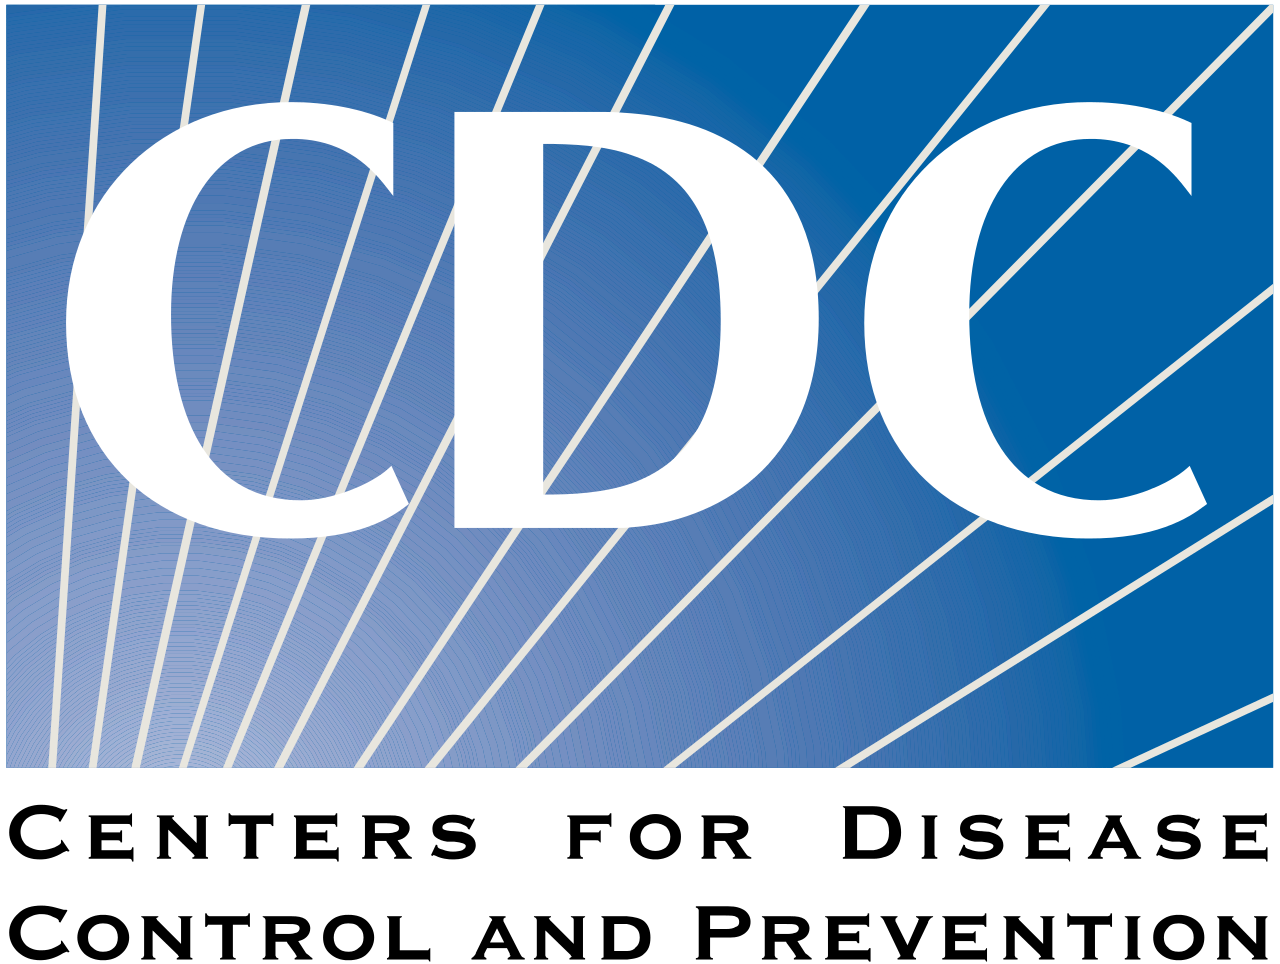 Logo for the Centers for Disease Control and Prevention.